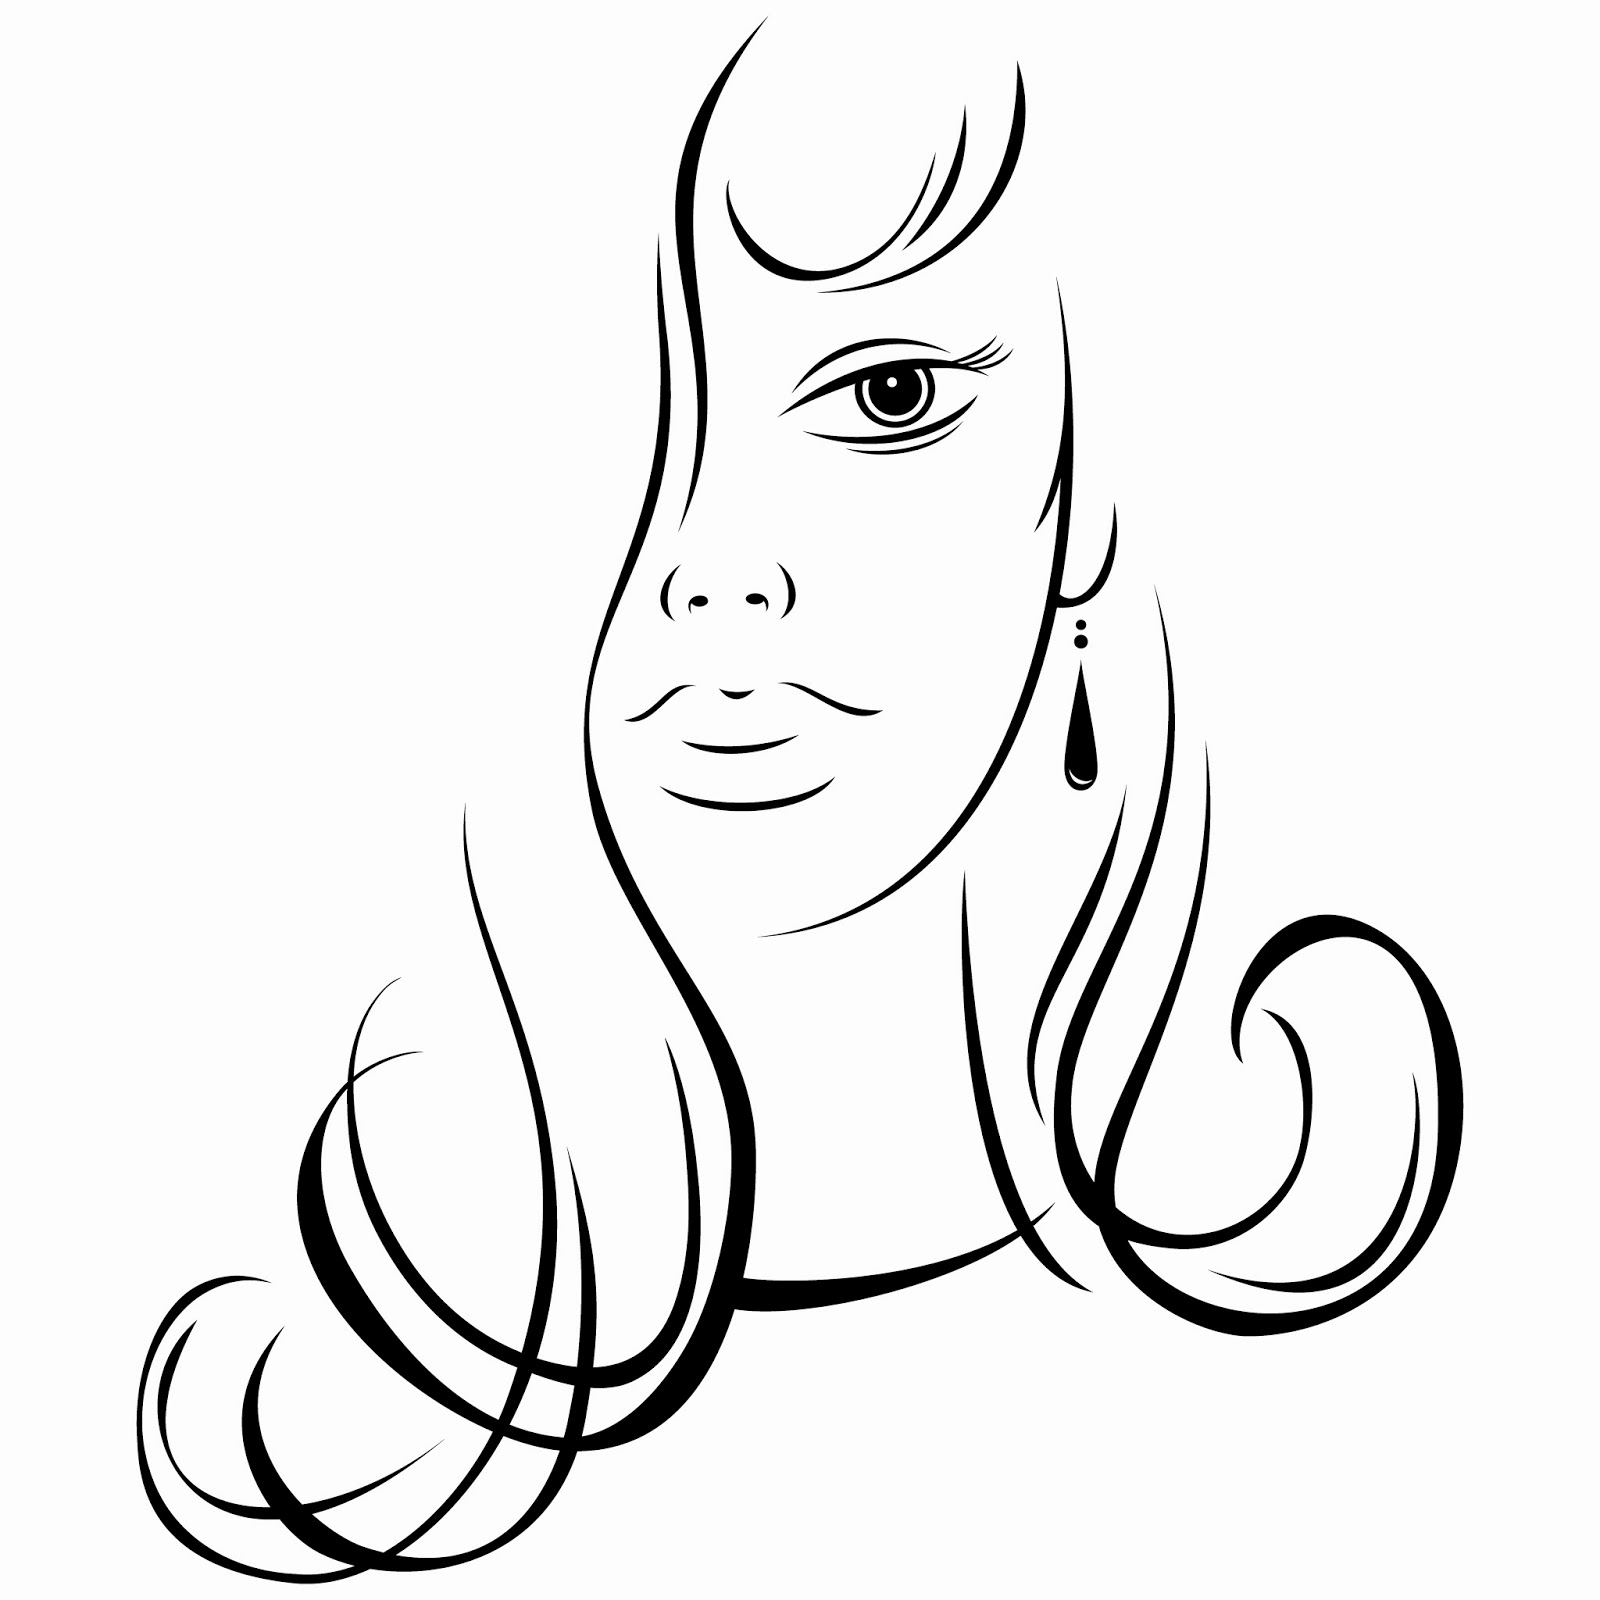 Download FREE EPS Design Graphic Art Vector Illustration: Ink sketch of young woman beautiful face on white background. Vector illustration clip-art design element save in 8 eps